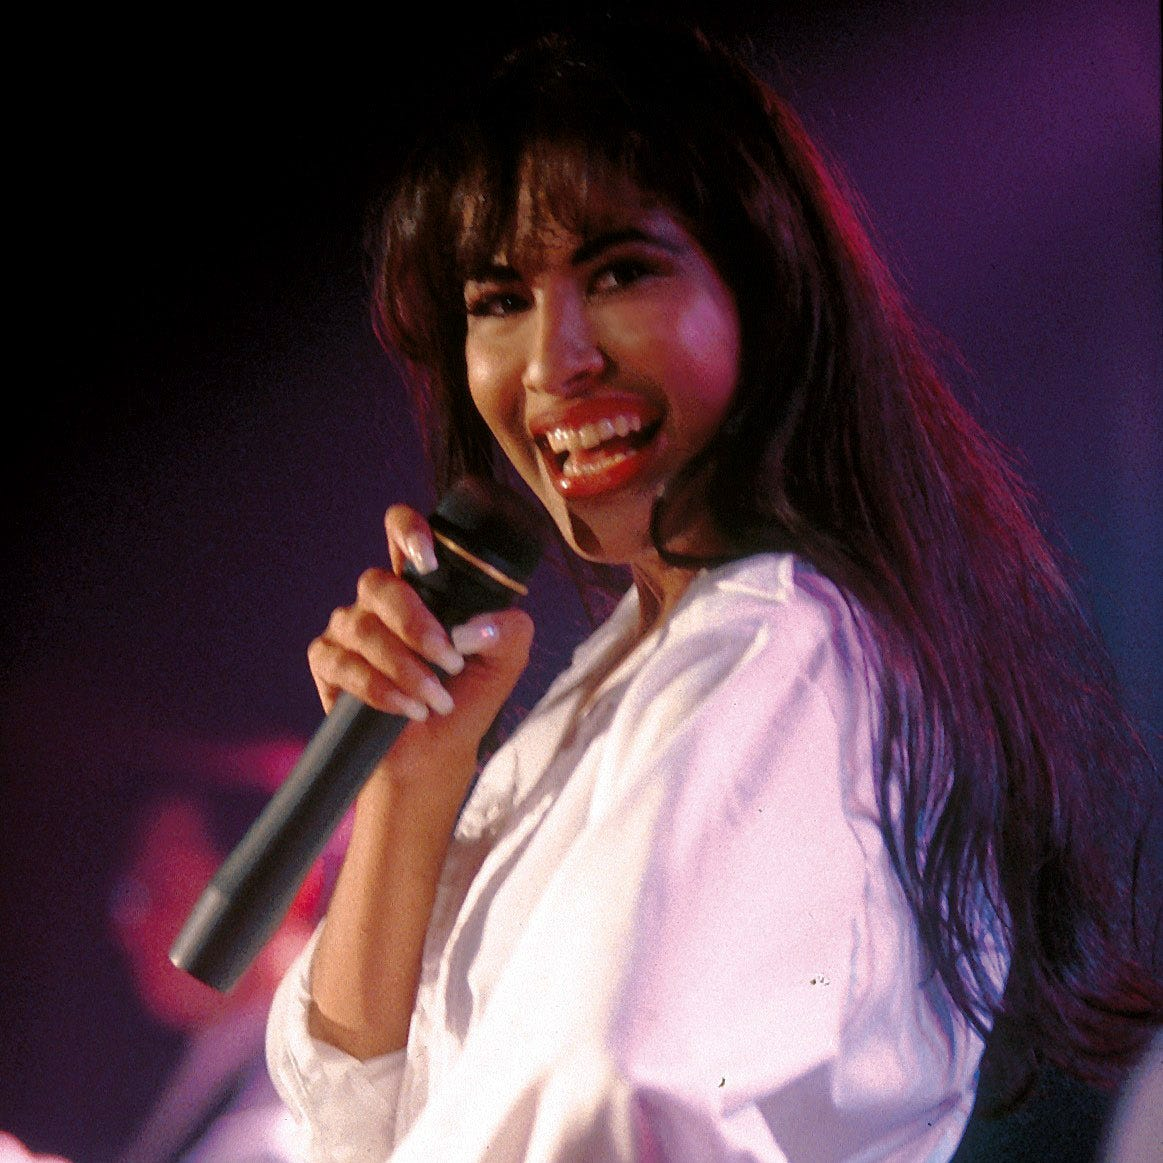 California university announces plans for a Selena media course on slain star's birthday